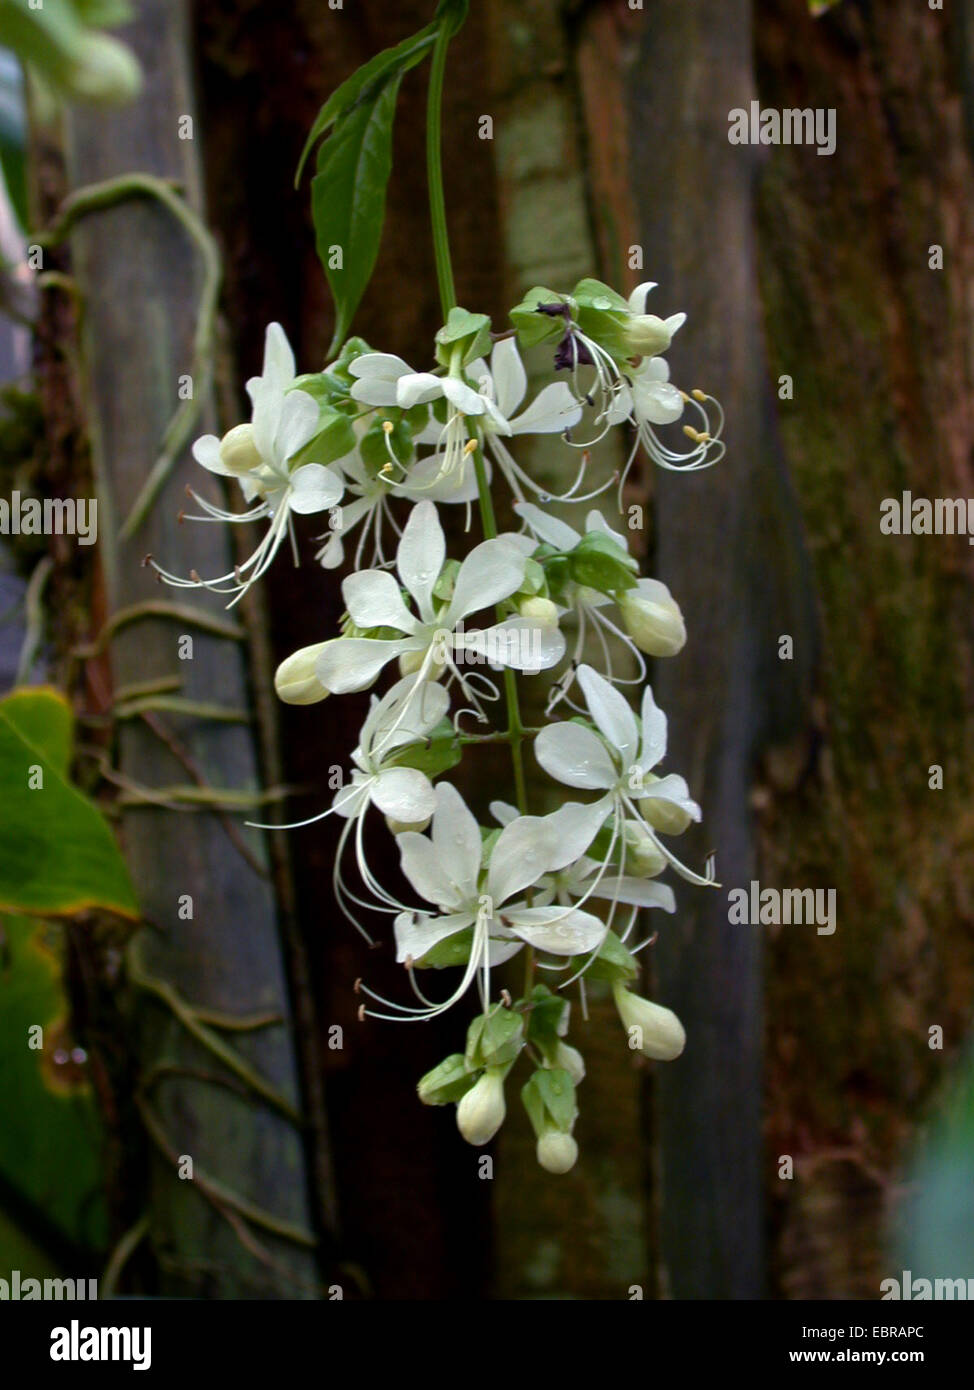 Wallich's glorybower, nodding clerodendrum, Bridal Veil (Clerodendrum wallichii), inflorescence - Stock Image